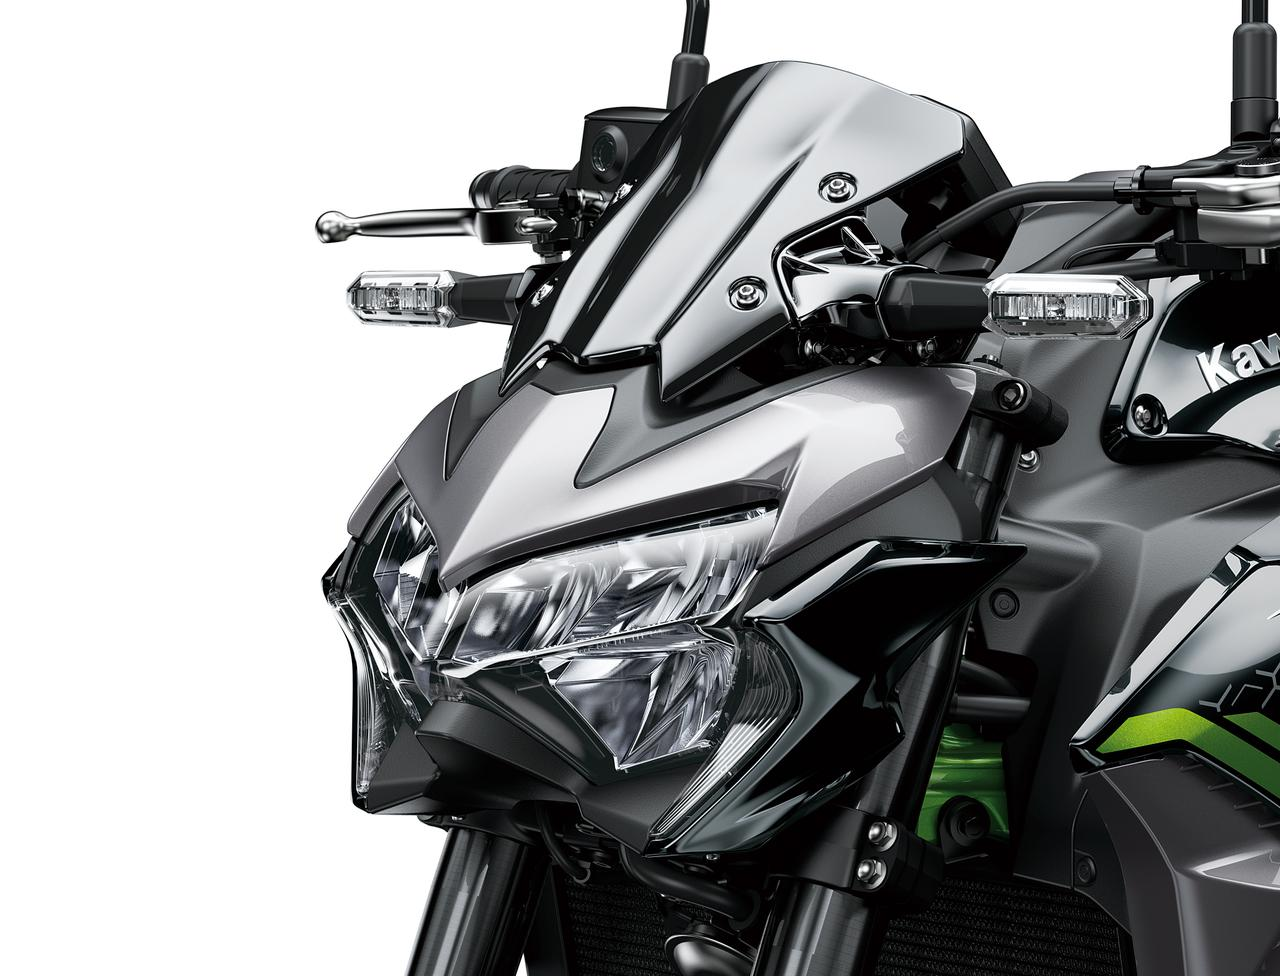 Images : 15番目の画像 - カワサキ新型Z900の写真をもっと見る! - LAWRENCE - Motorcycle x Cars + α = Your Life.